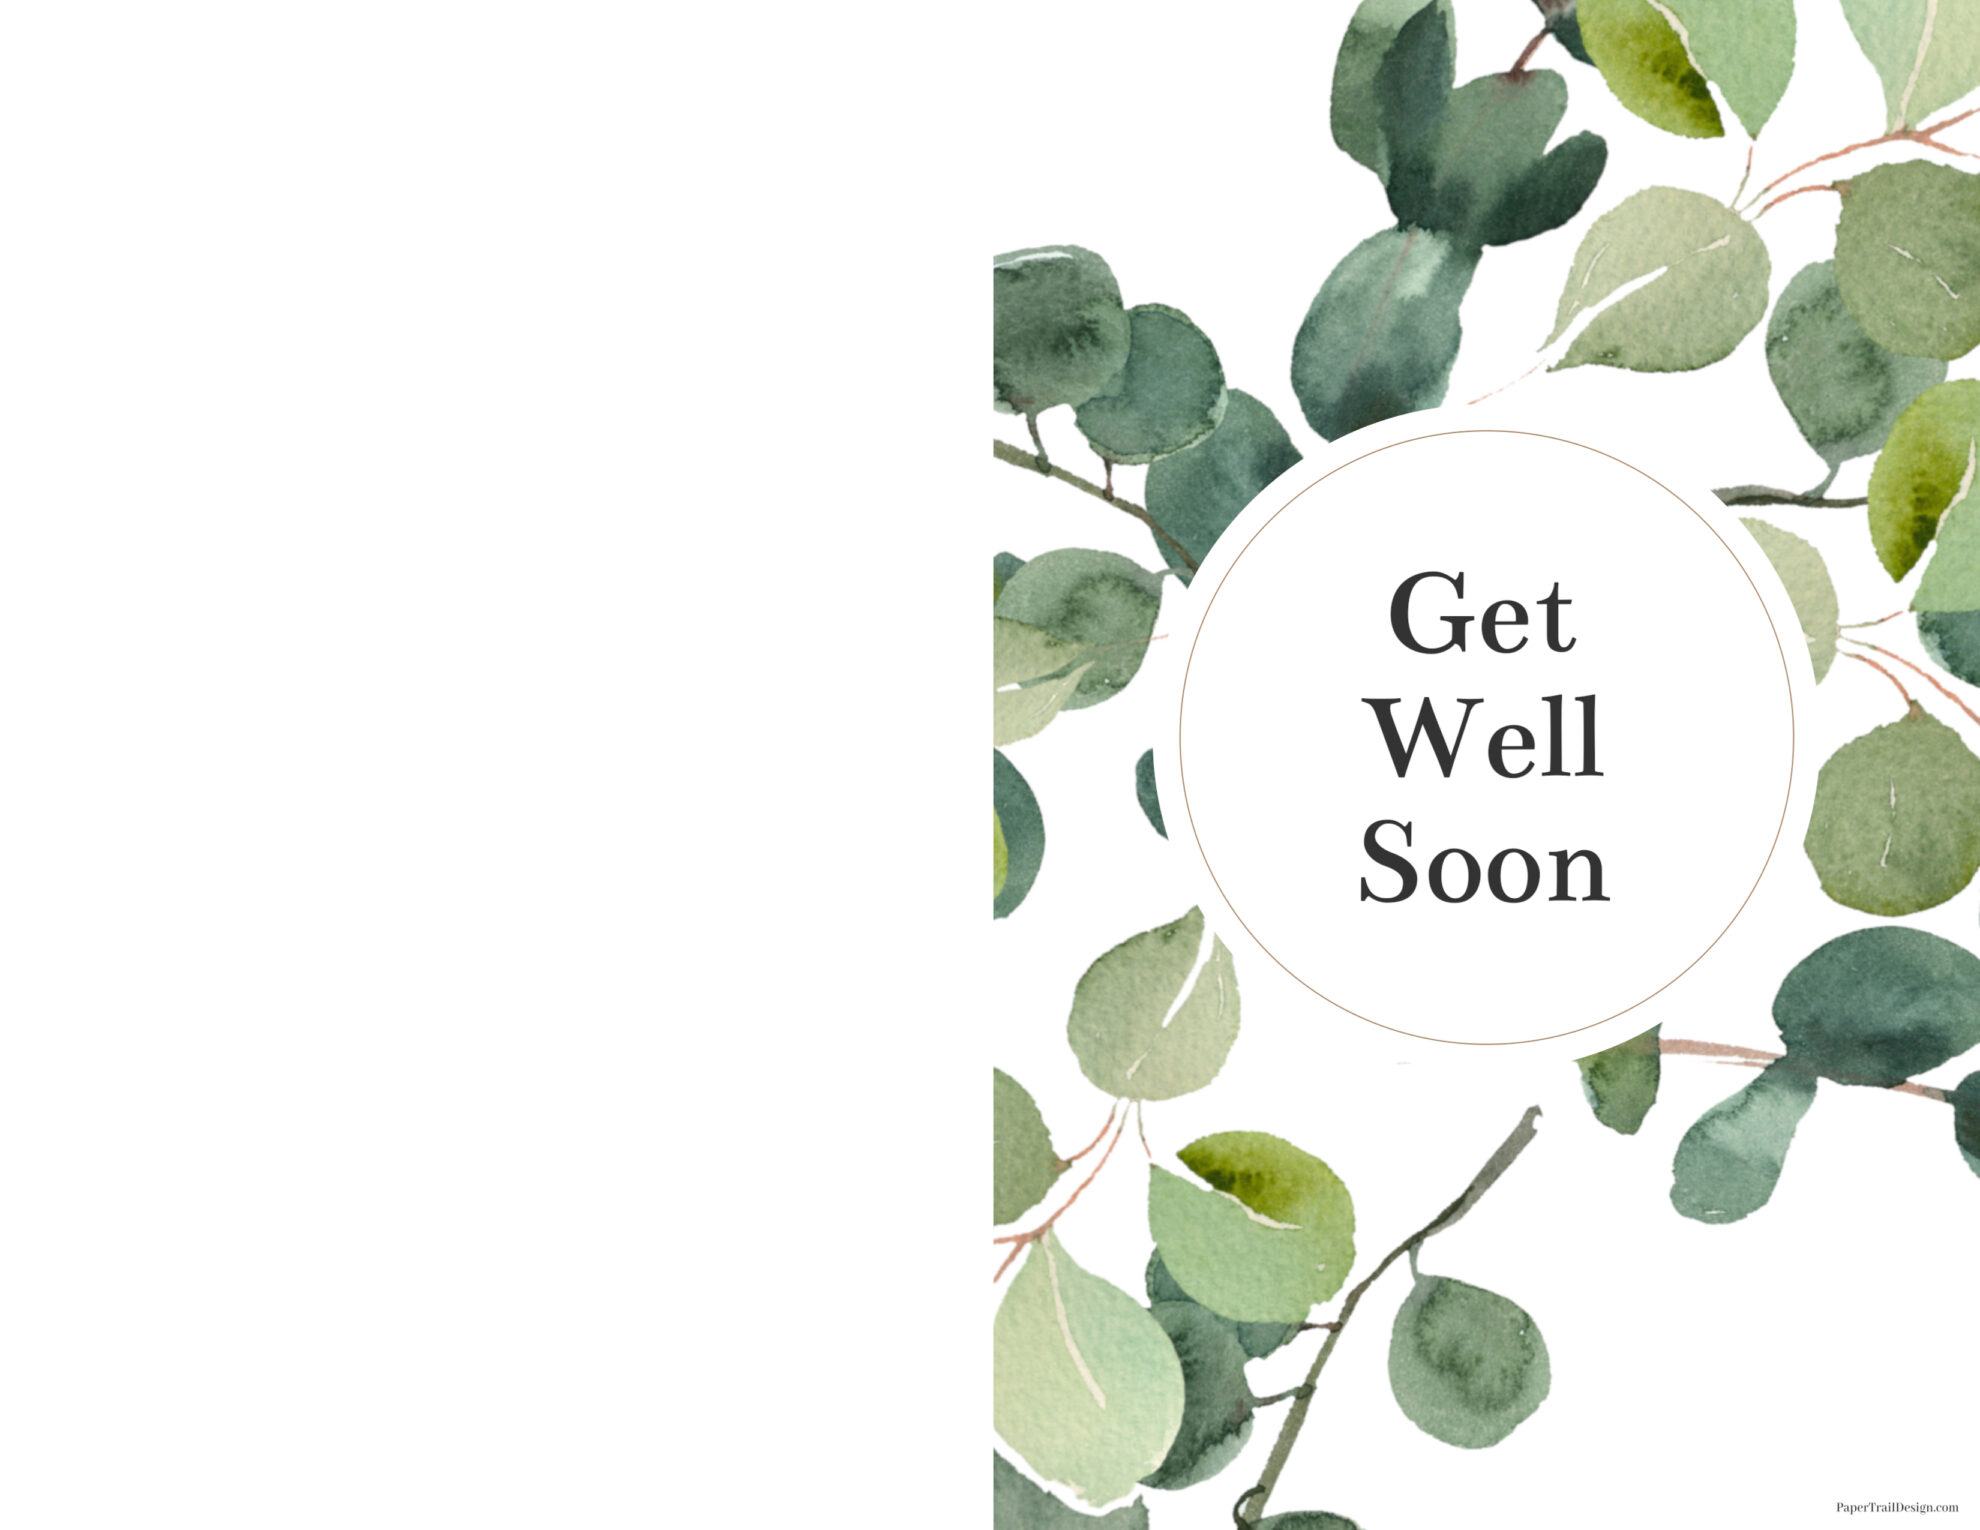 Get Well Soon Cards Printable  Paper Trail Design With Regard To Get Well Soon Card Template